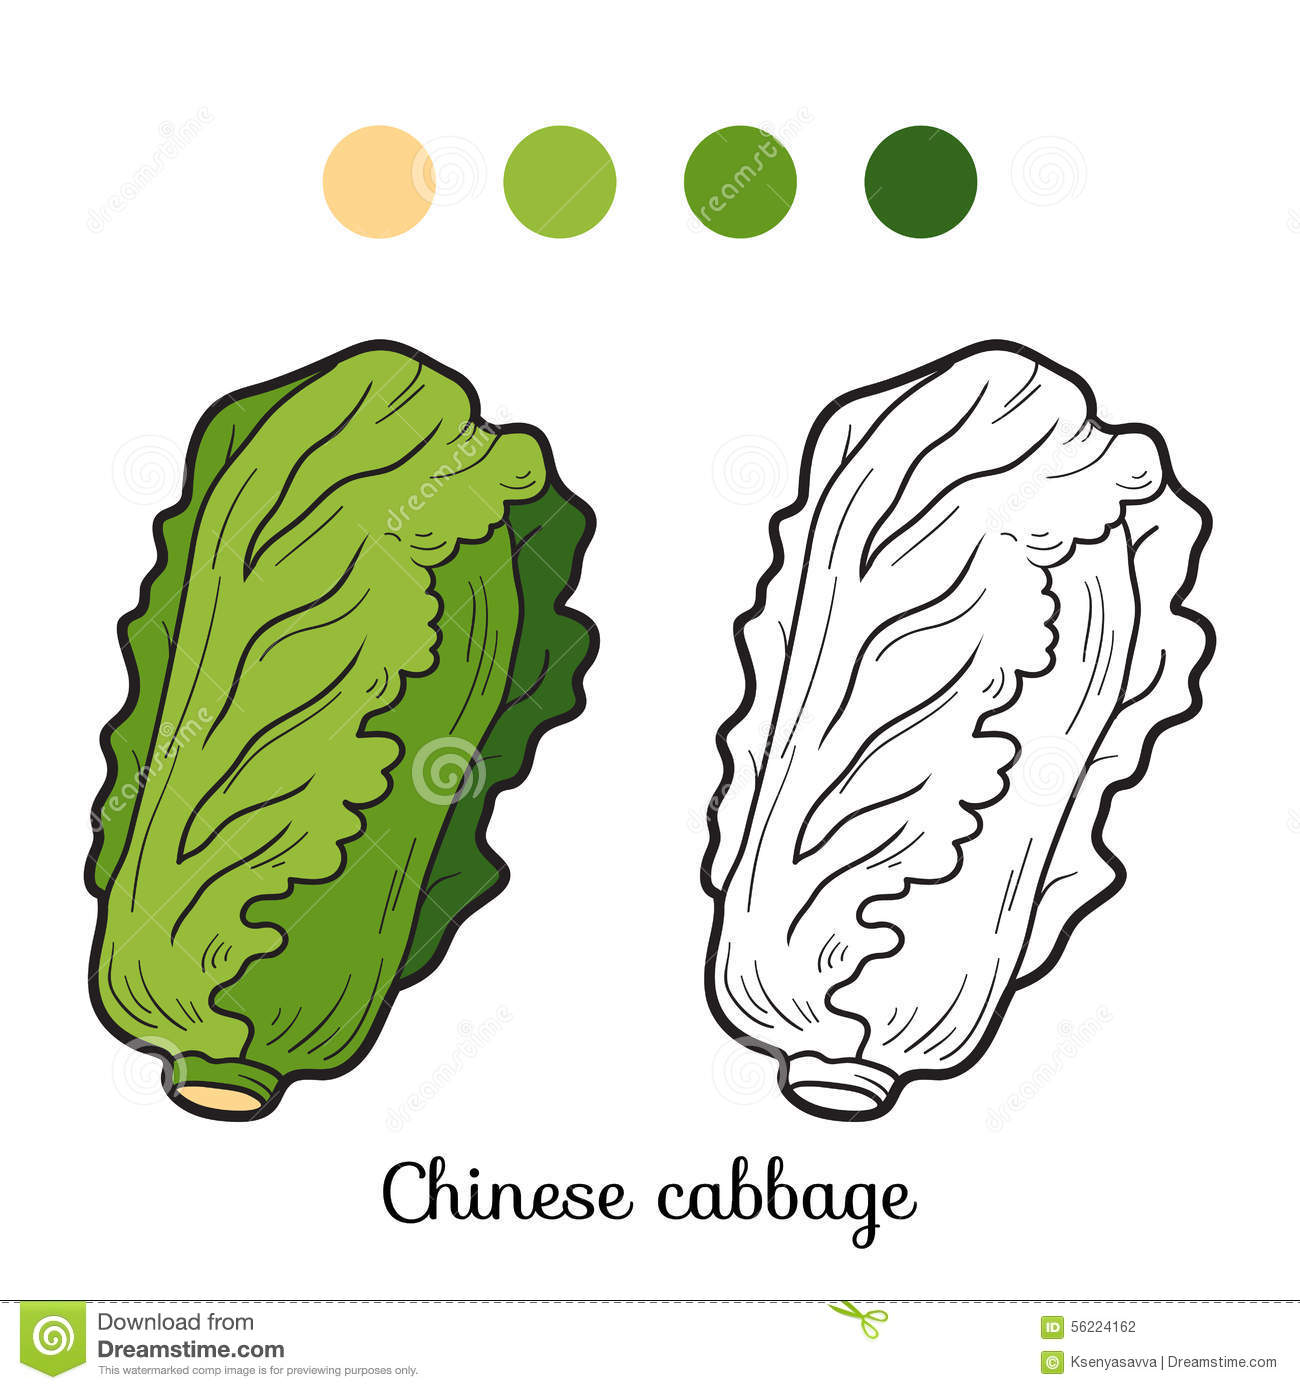 Chinese Cabbage Stock Illustrations.